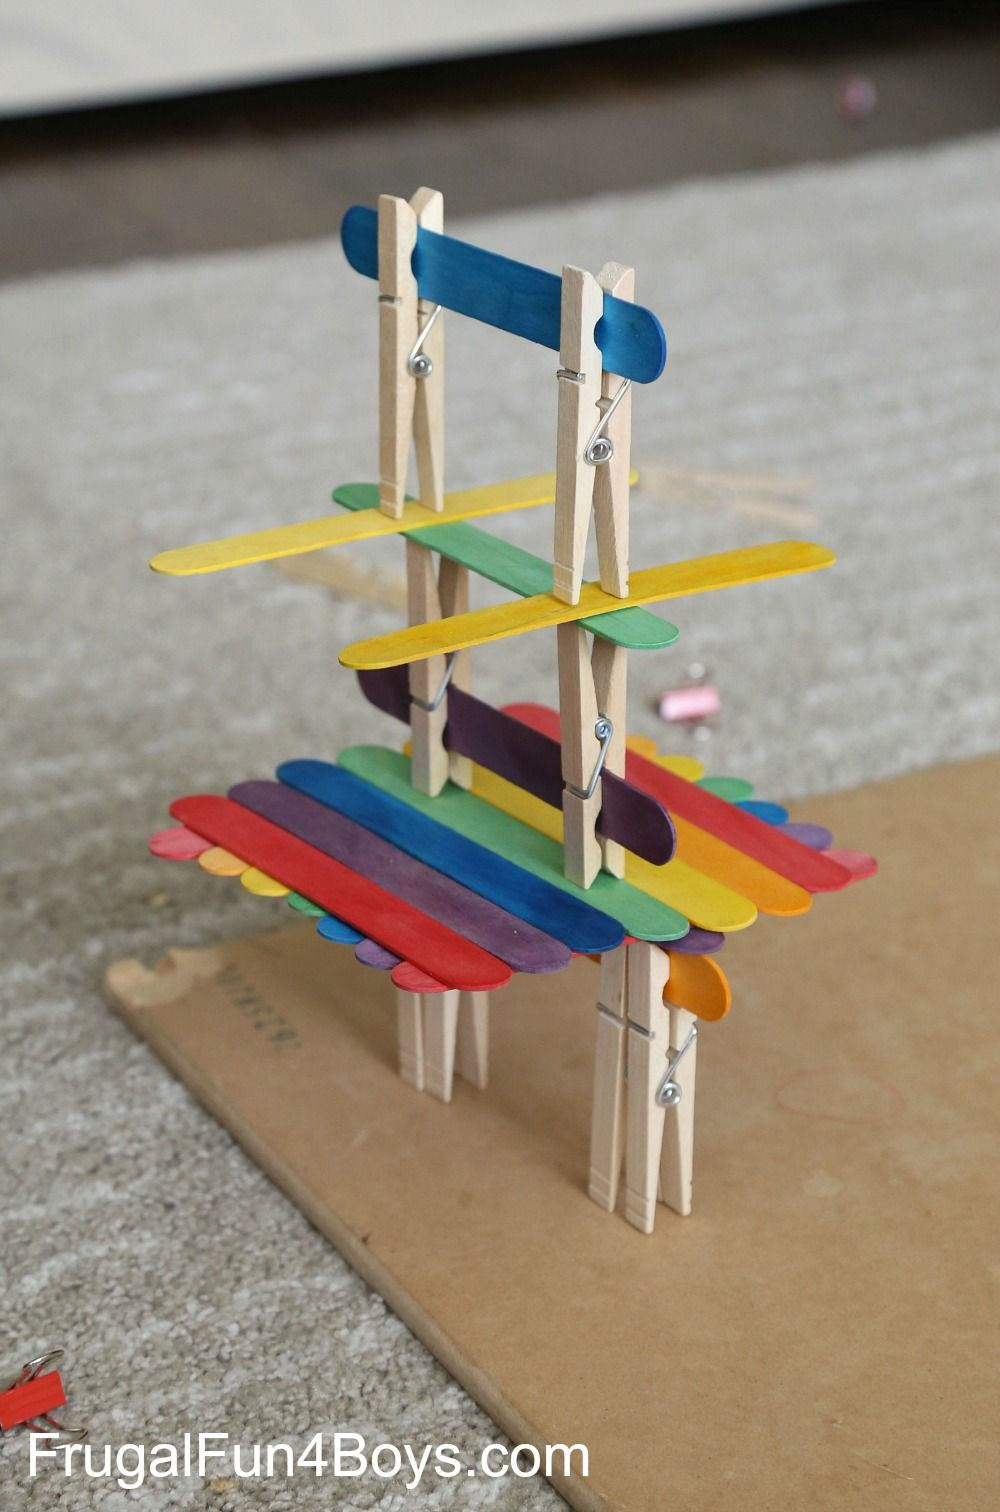 Building With Craft Sticks Clothespins And Binder Clips